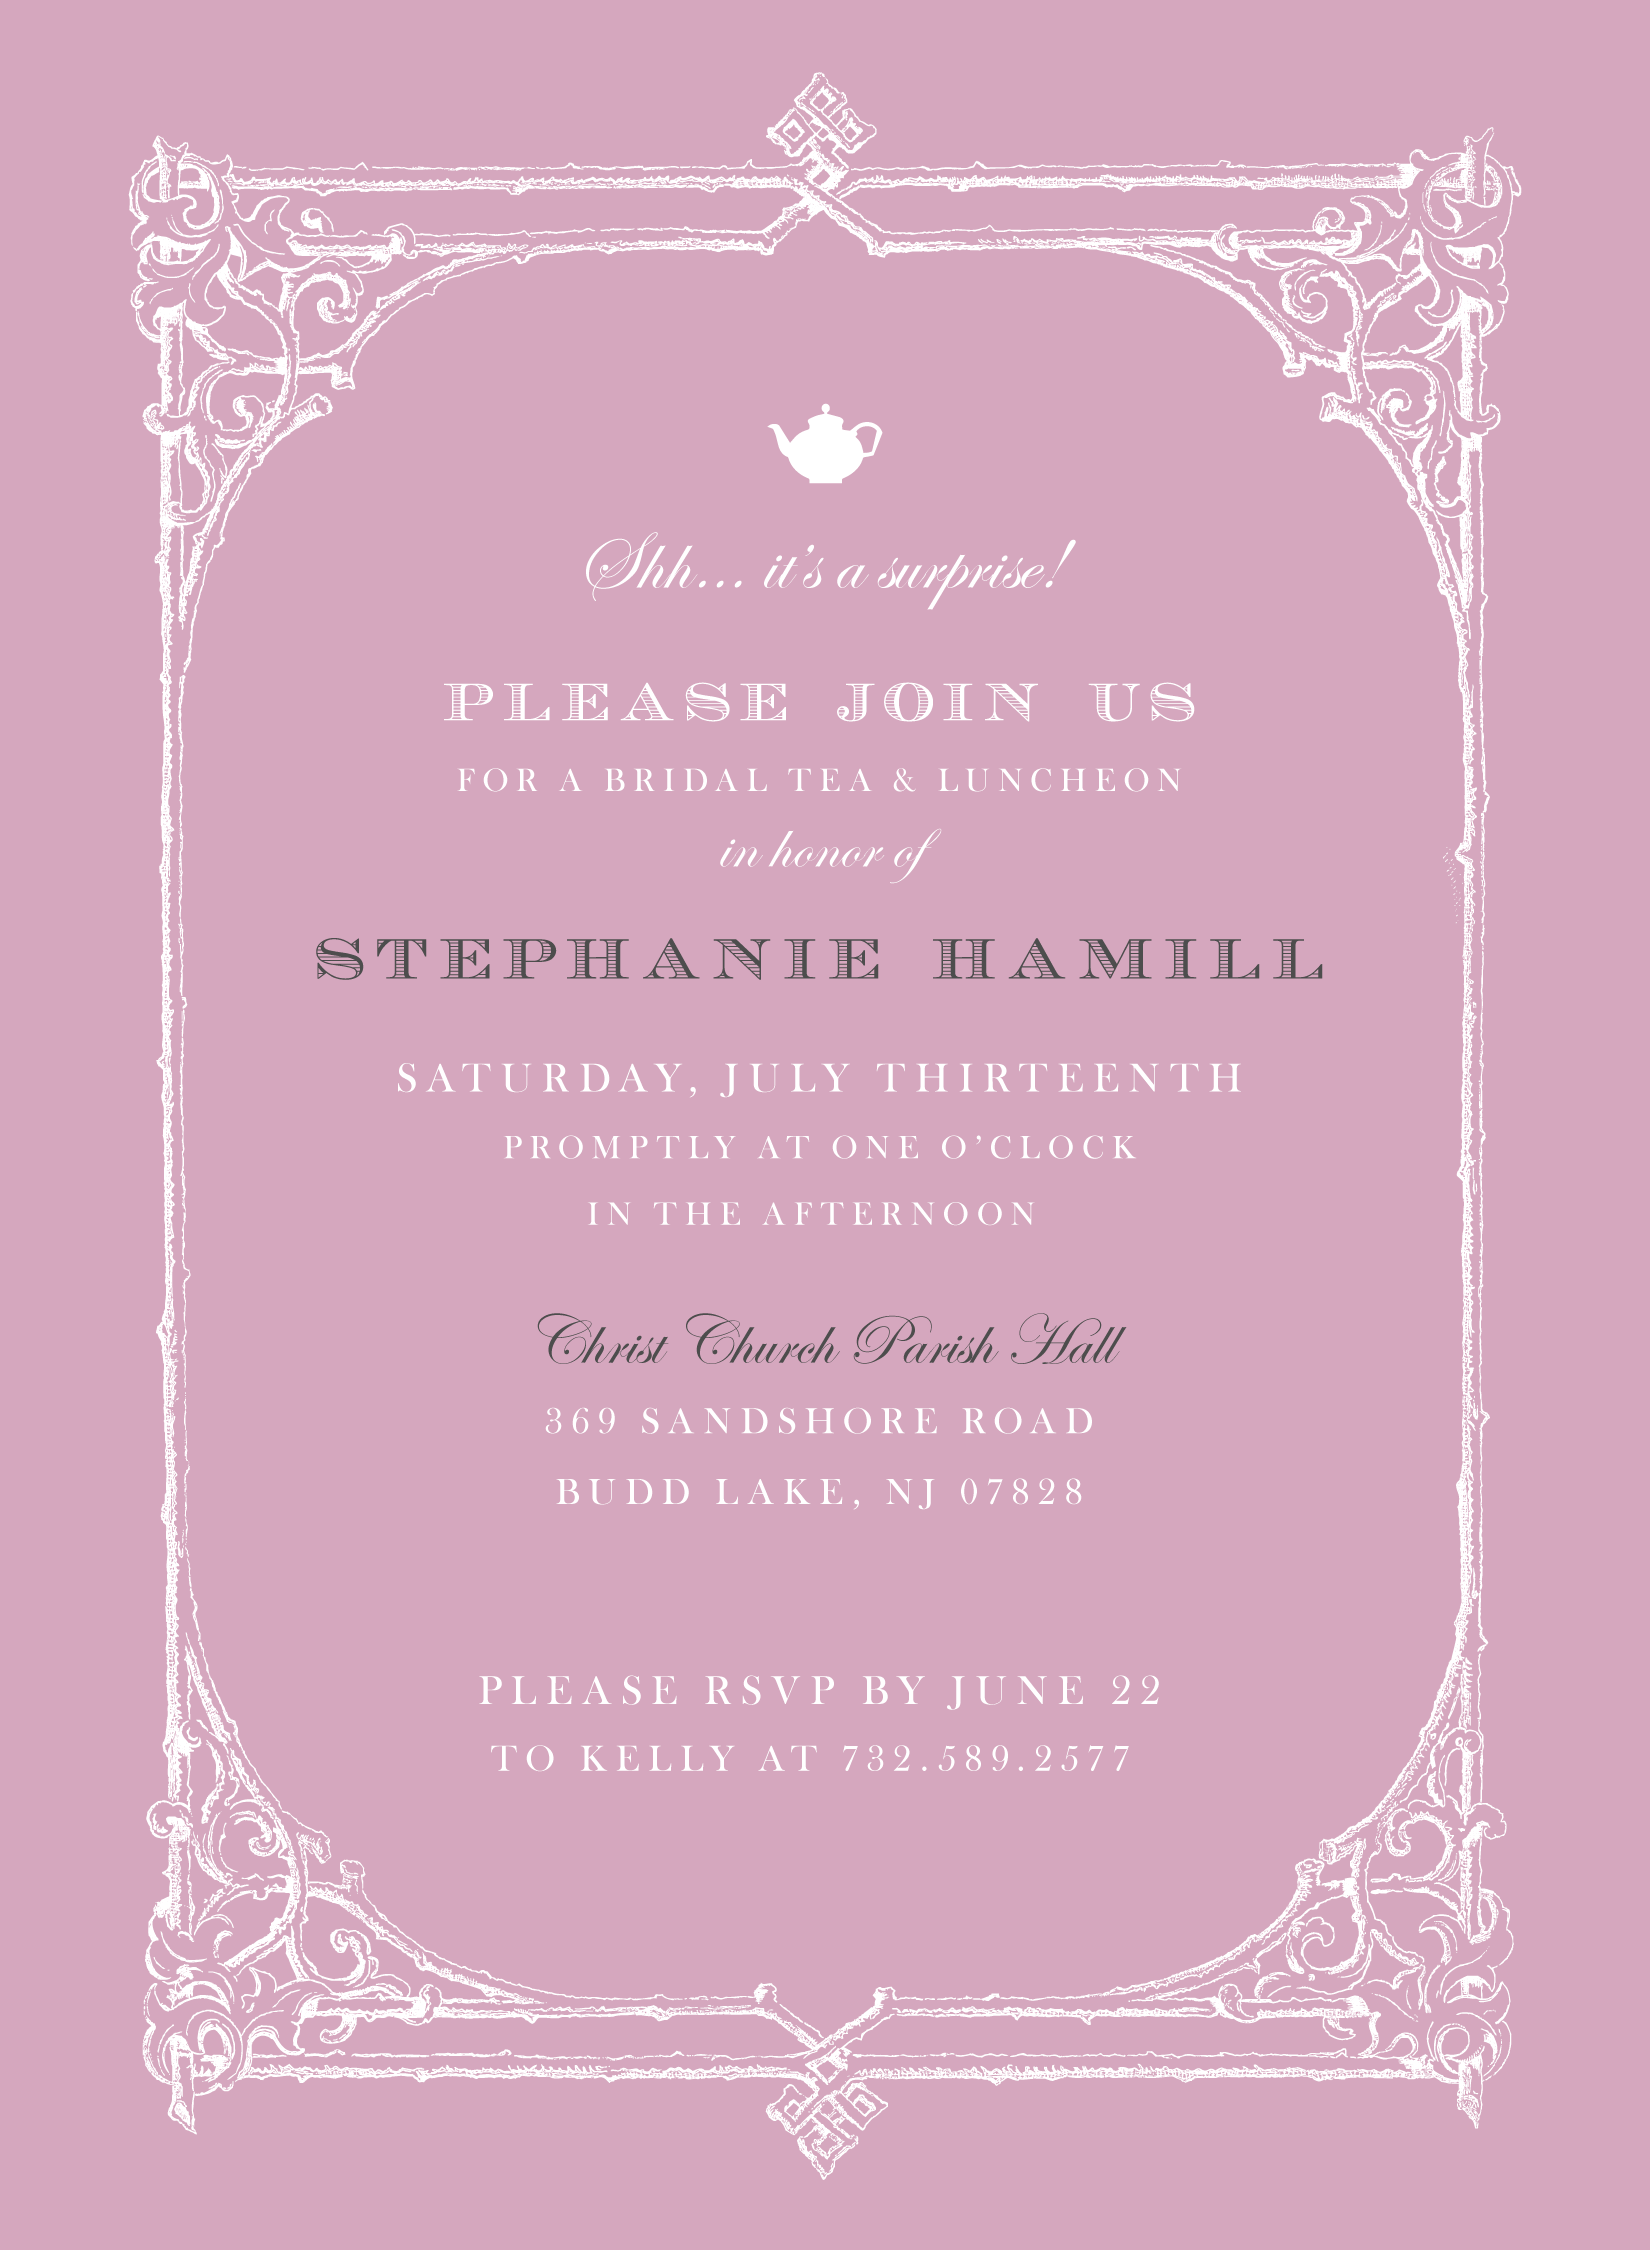 Bridal Shower Invitation Design: Stephanie